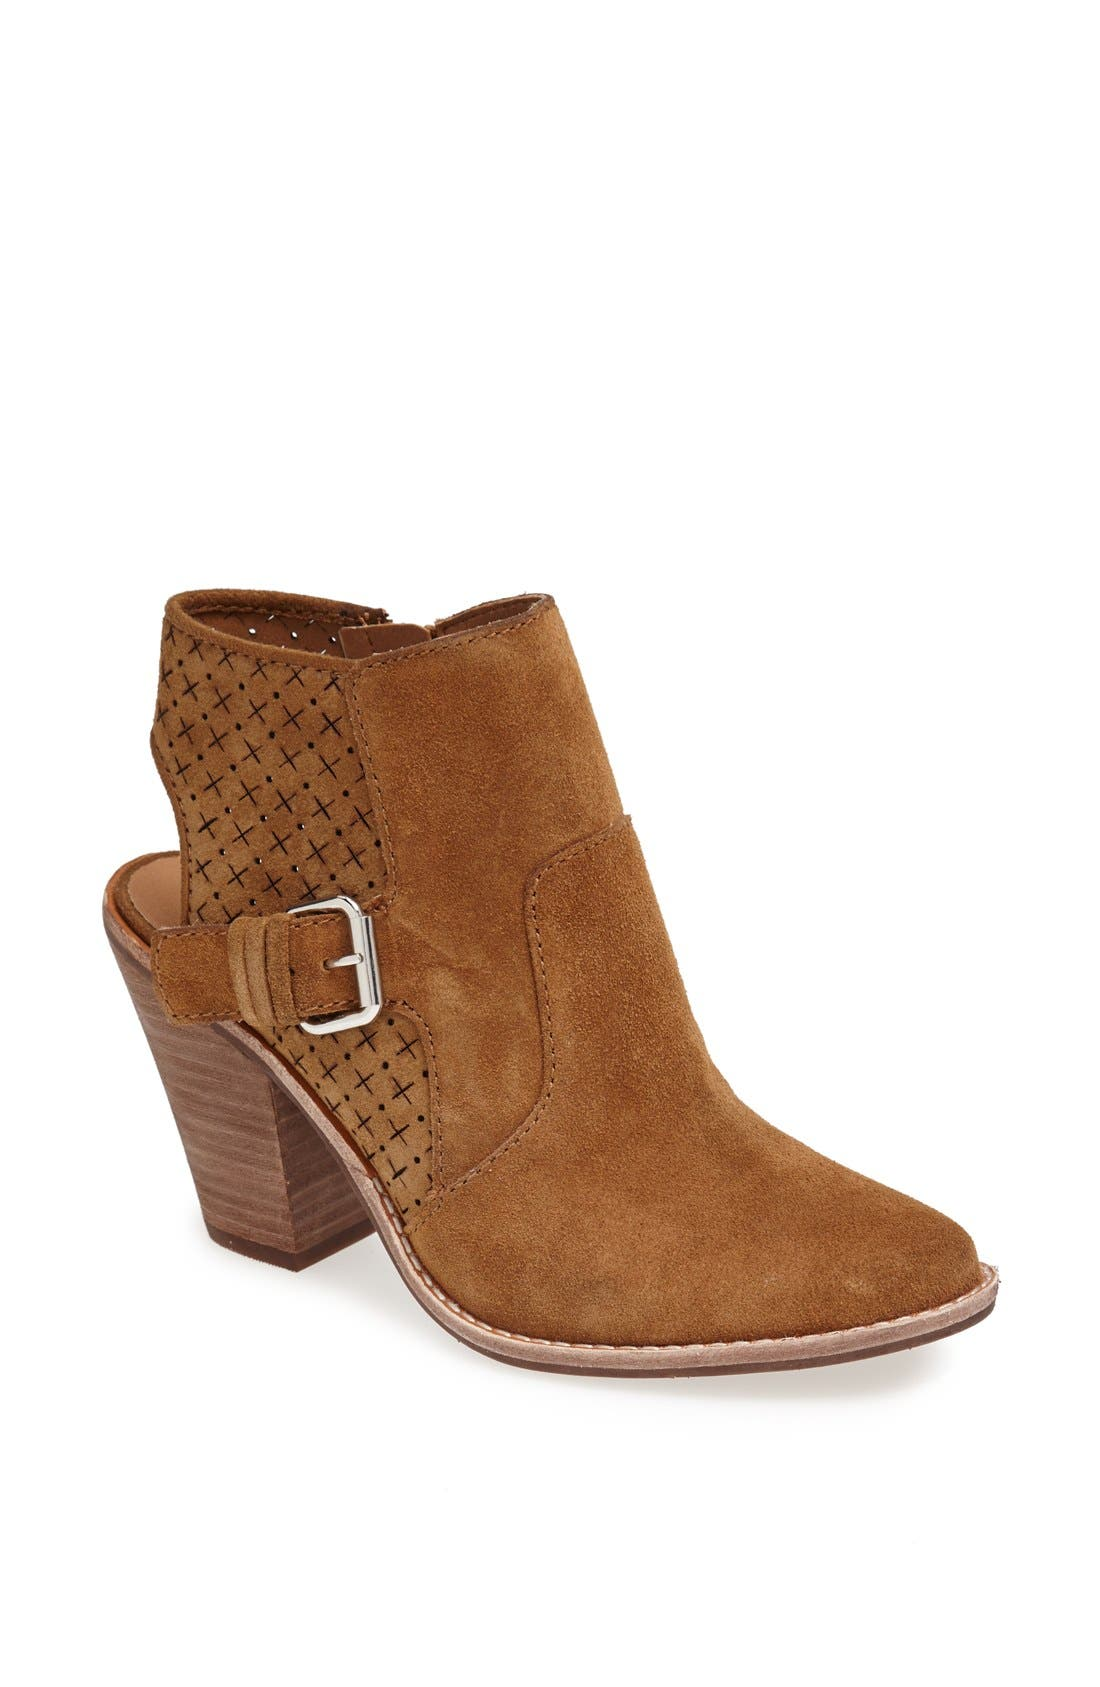 Alternate Image 1 Selected - DV by Dolce Vita 'Calin' Open Back Suede Bootie (Nordstrom Exclusive)